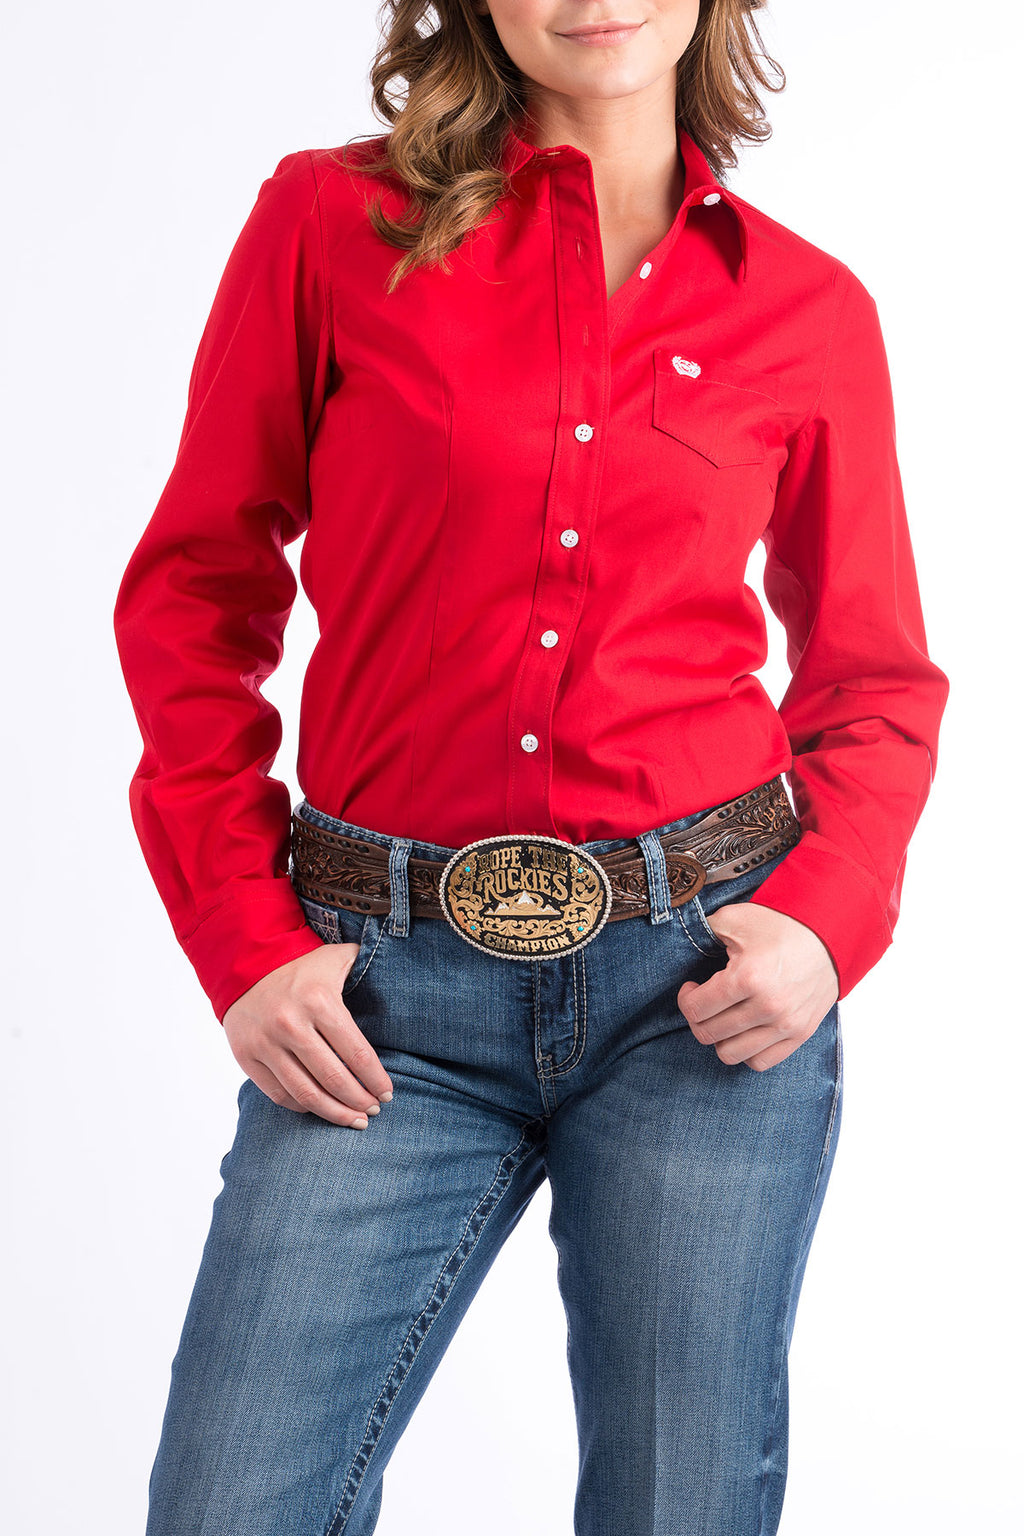 CINCH Women's Solid Red Button-Down Western Shirt